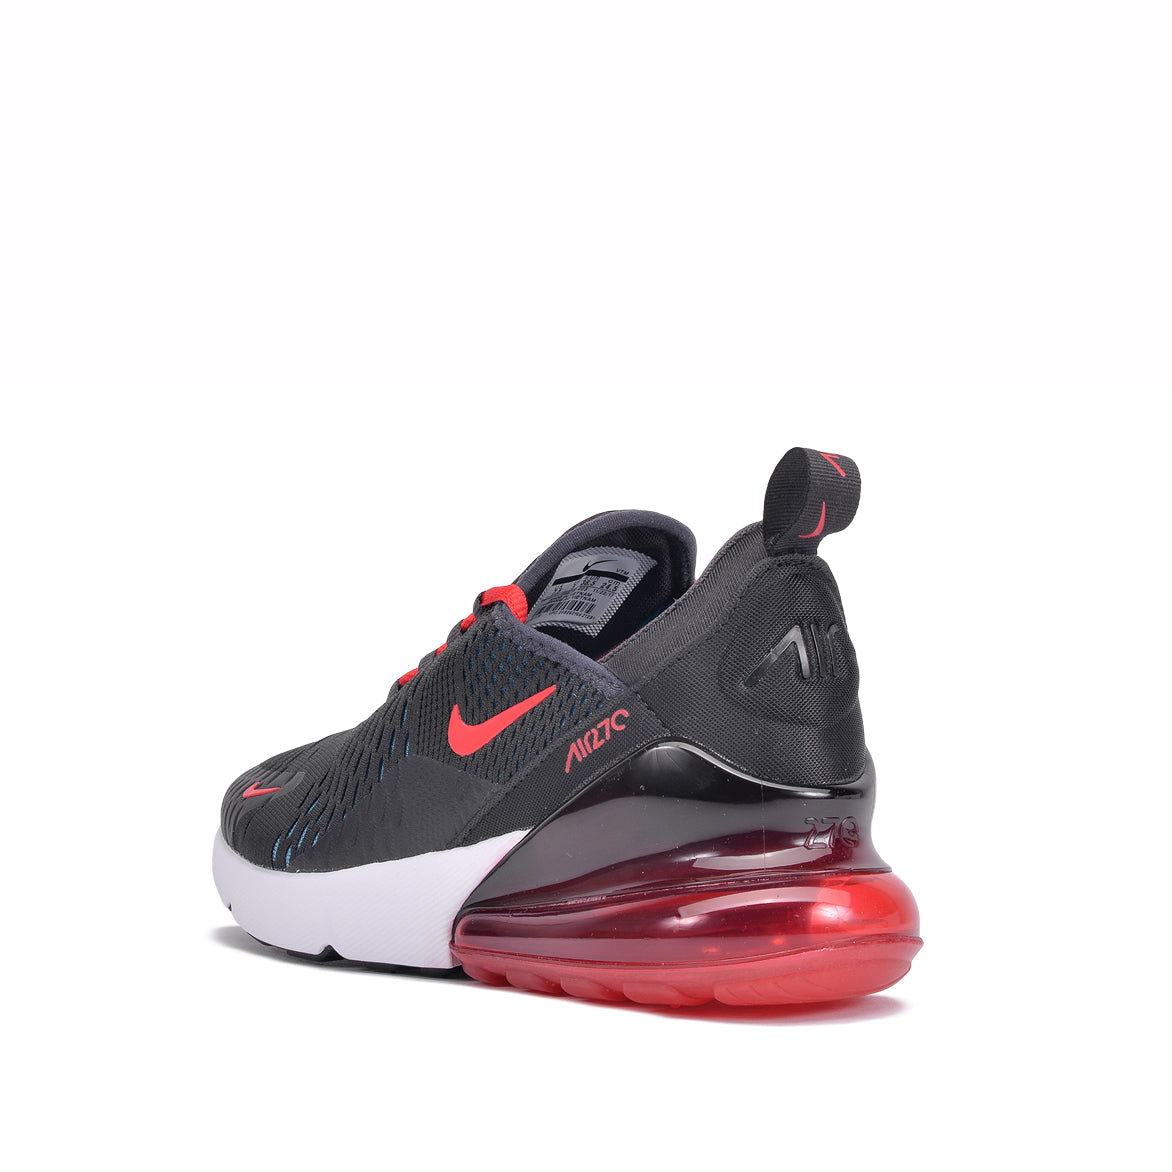 WMNS AIR MAX 270 - OIL GREY / SPEED RED